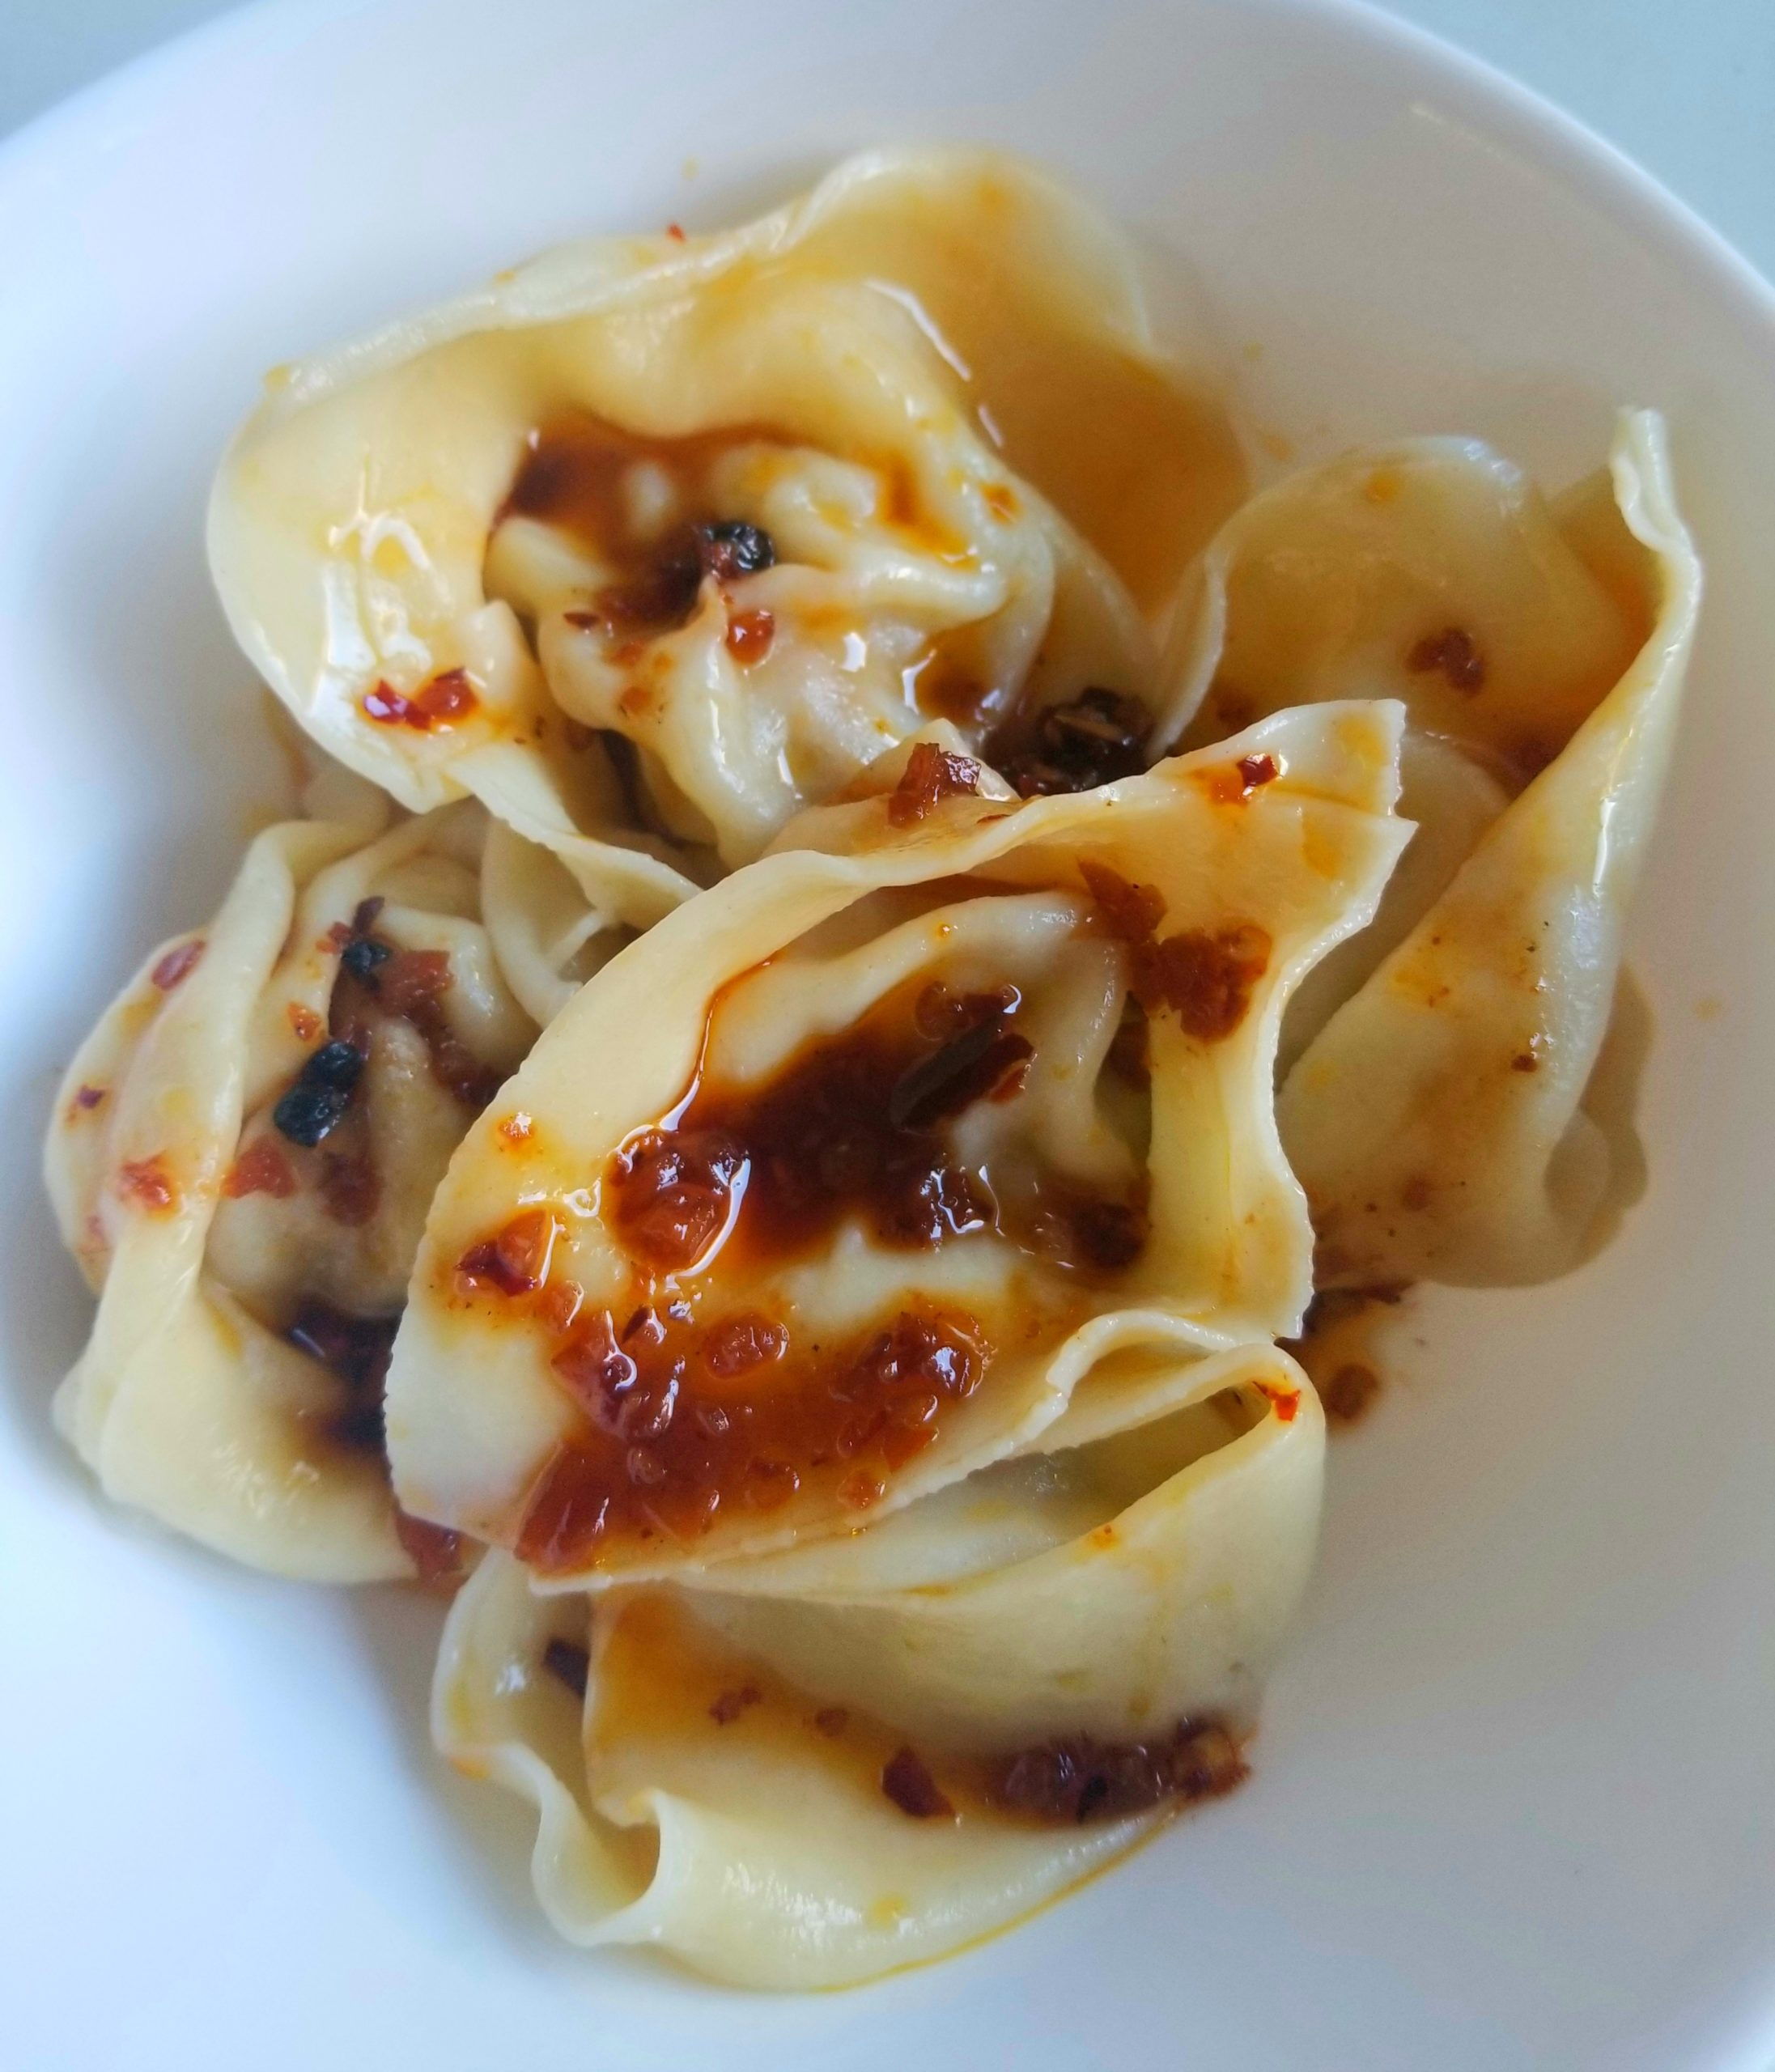 Pork Wontons in a Spicy Chili Oil